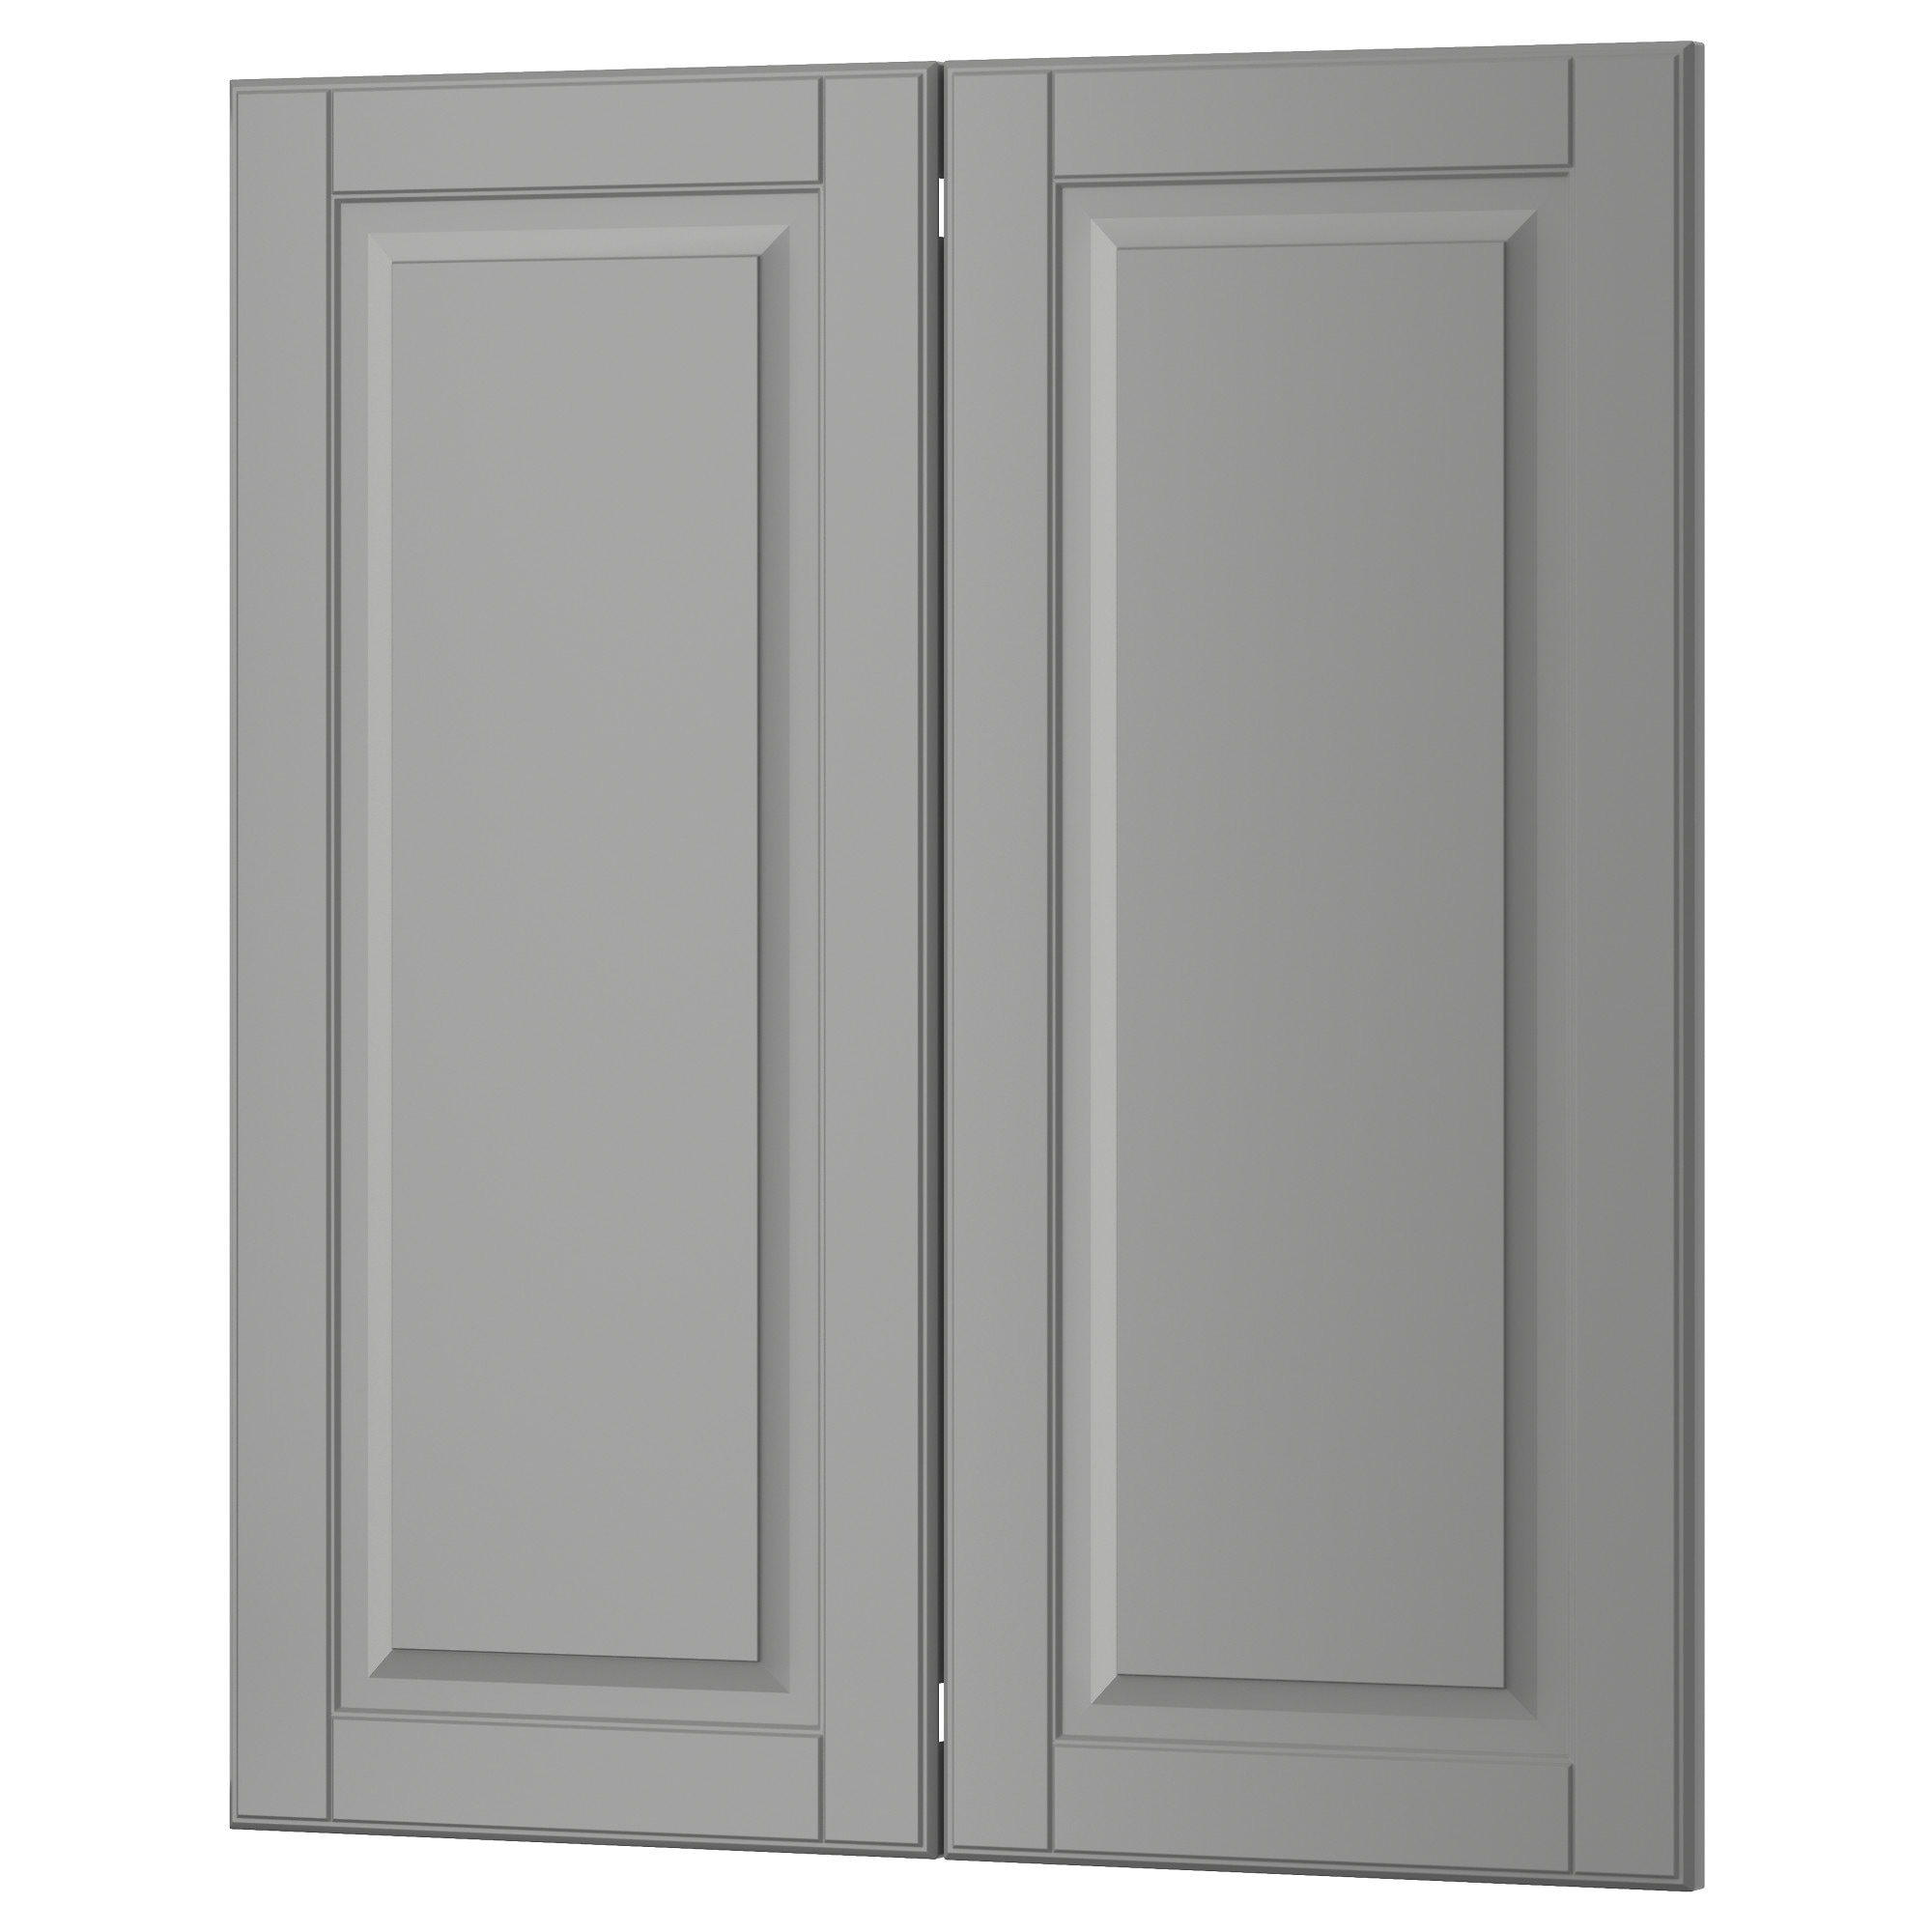 bodbyn 2 p doorcorner base cabinet set ikea - Pictures Of Kitchen Cabinet Doors